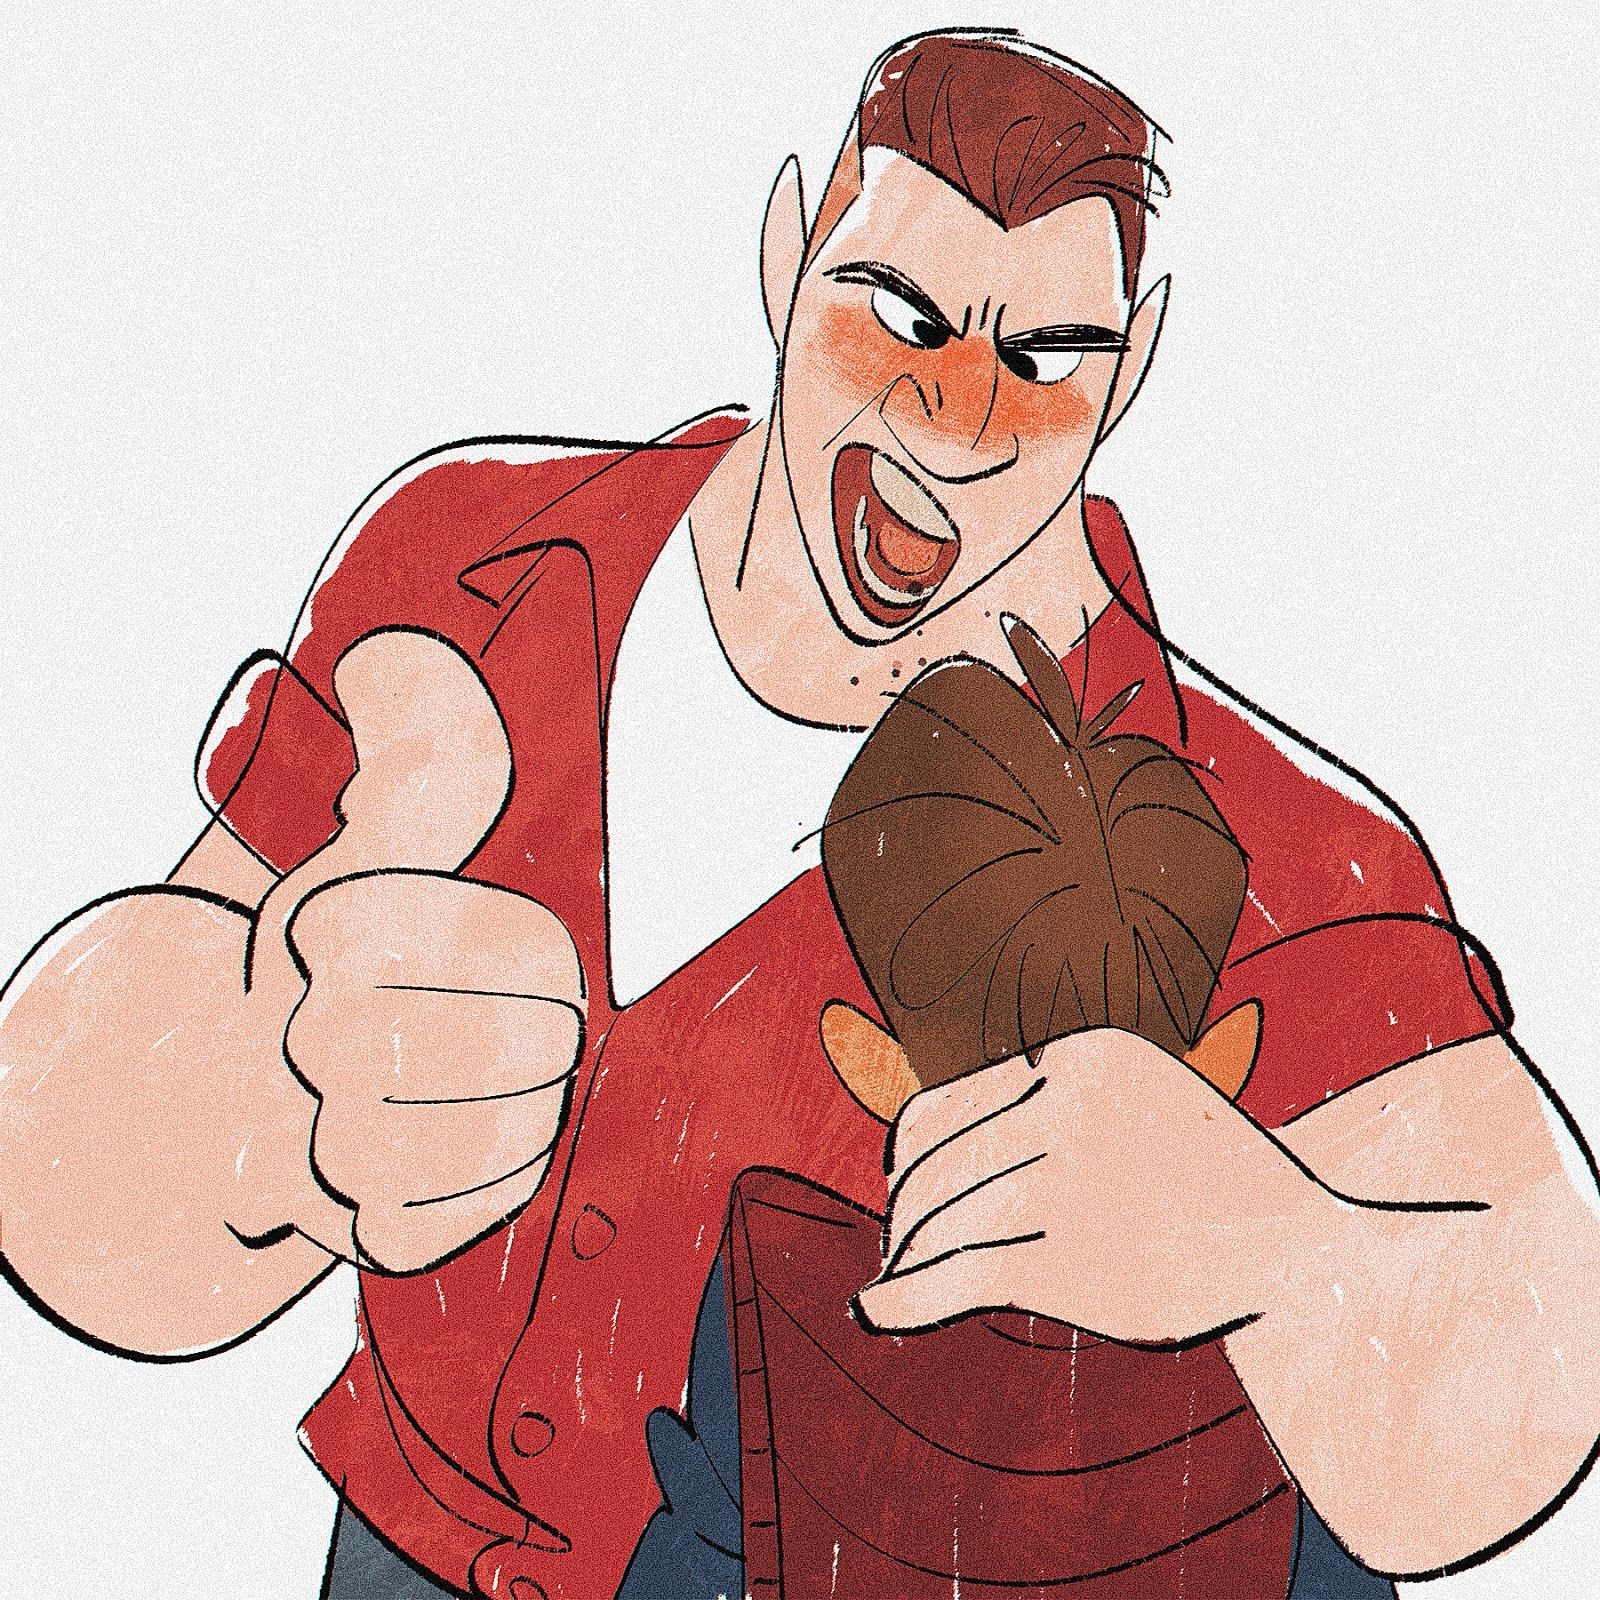 """Great movie. Biff and Marty by Bobby Pontillas (Same artist for the heart-warming shortfilm """"Feast"""" featured with Big Hero 6)"""